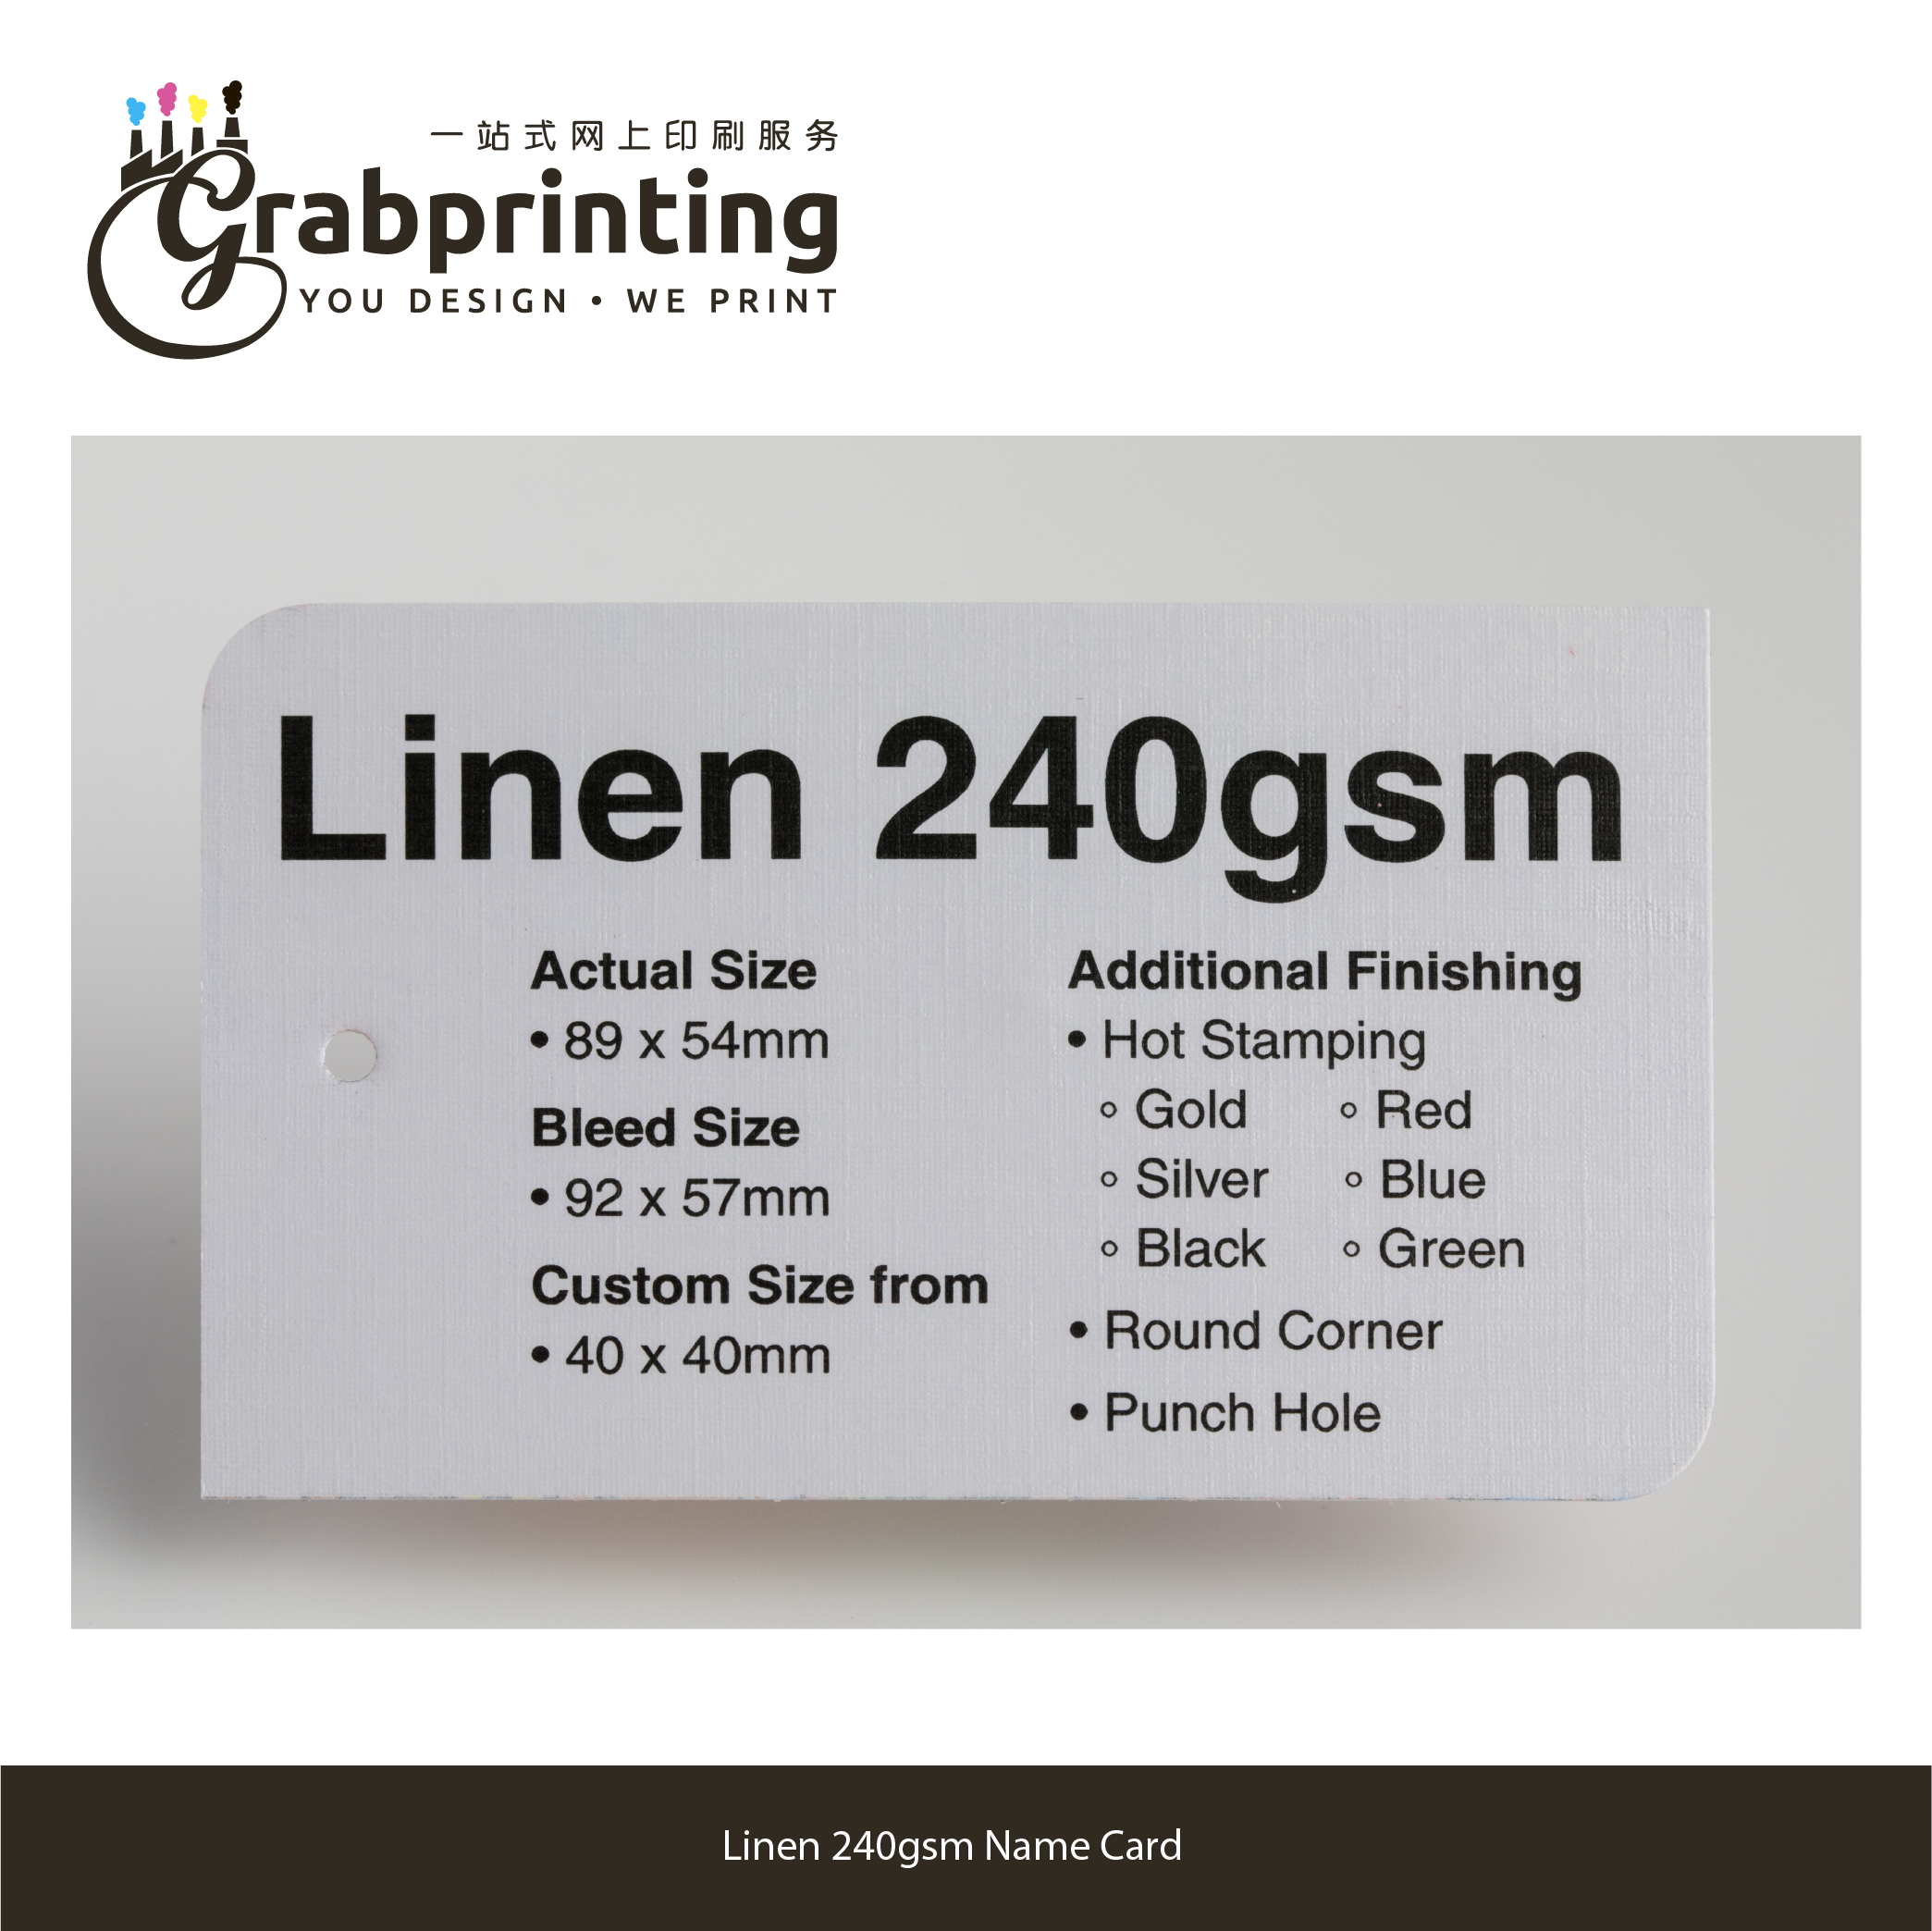 name cards Name Card (23 materials to choose from) grabprinting 47 Linen 240gsm Name Card 501px 501px